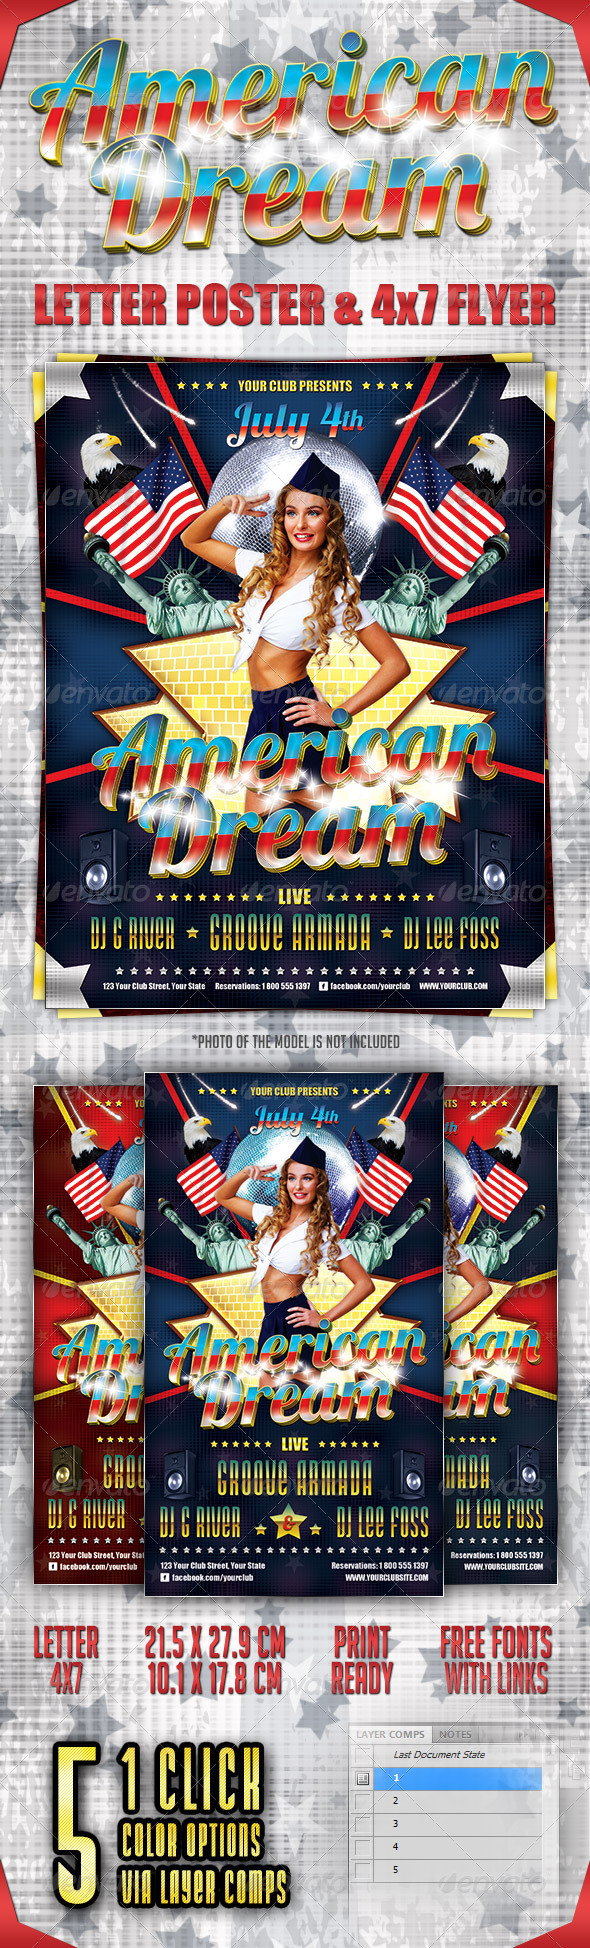 GraphicRiver American Dream Party Poster and Flyer 2342706